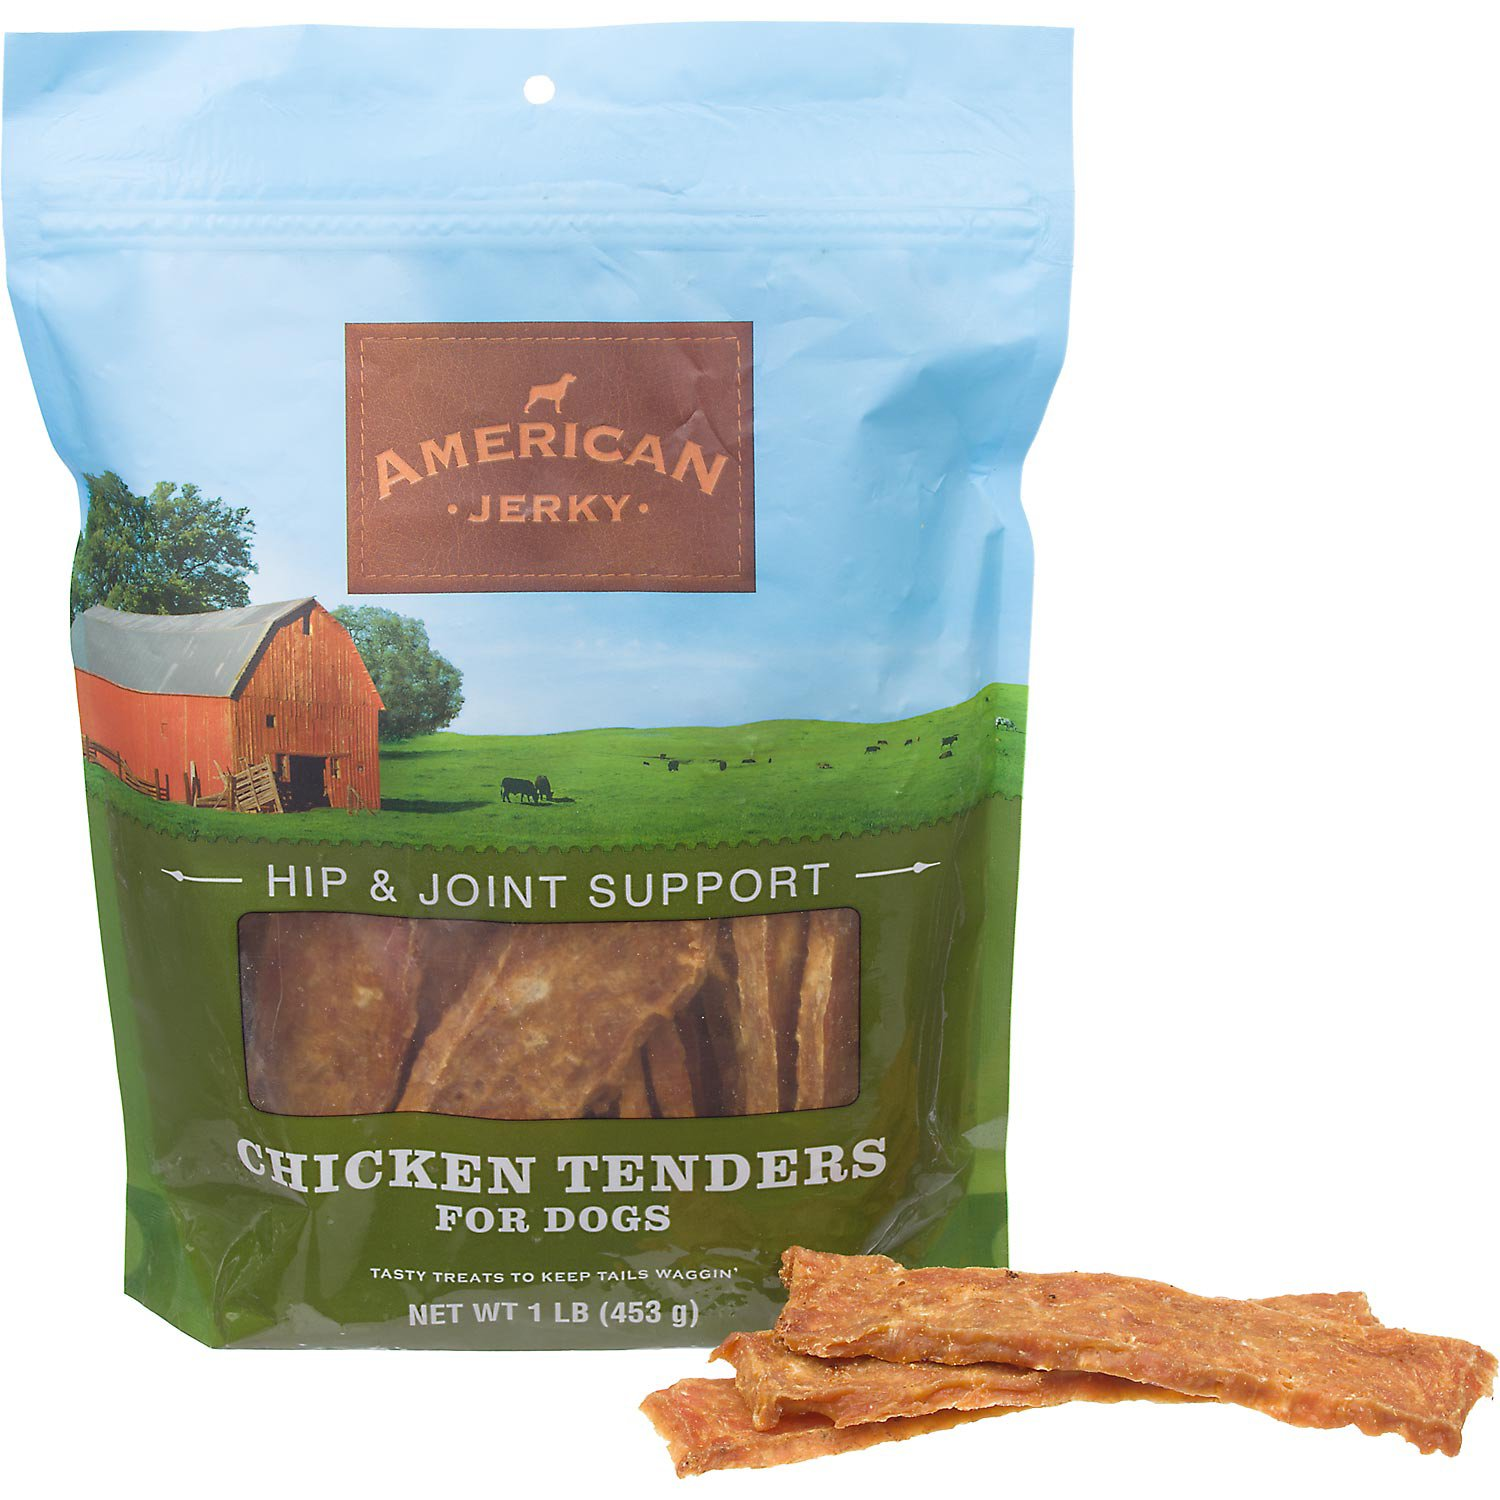 American Jerky Hip & Joint Support Chicken Tenders Dog Treats